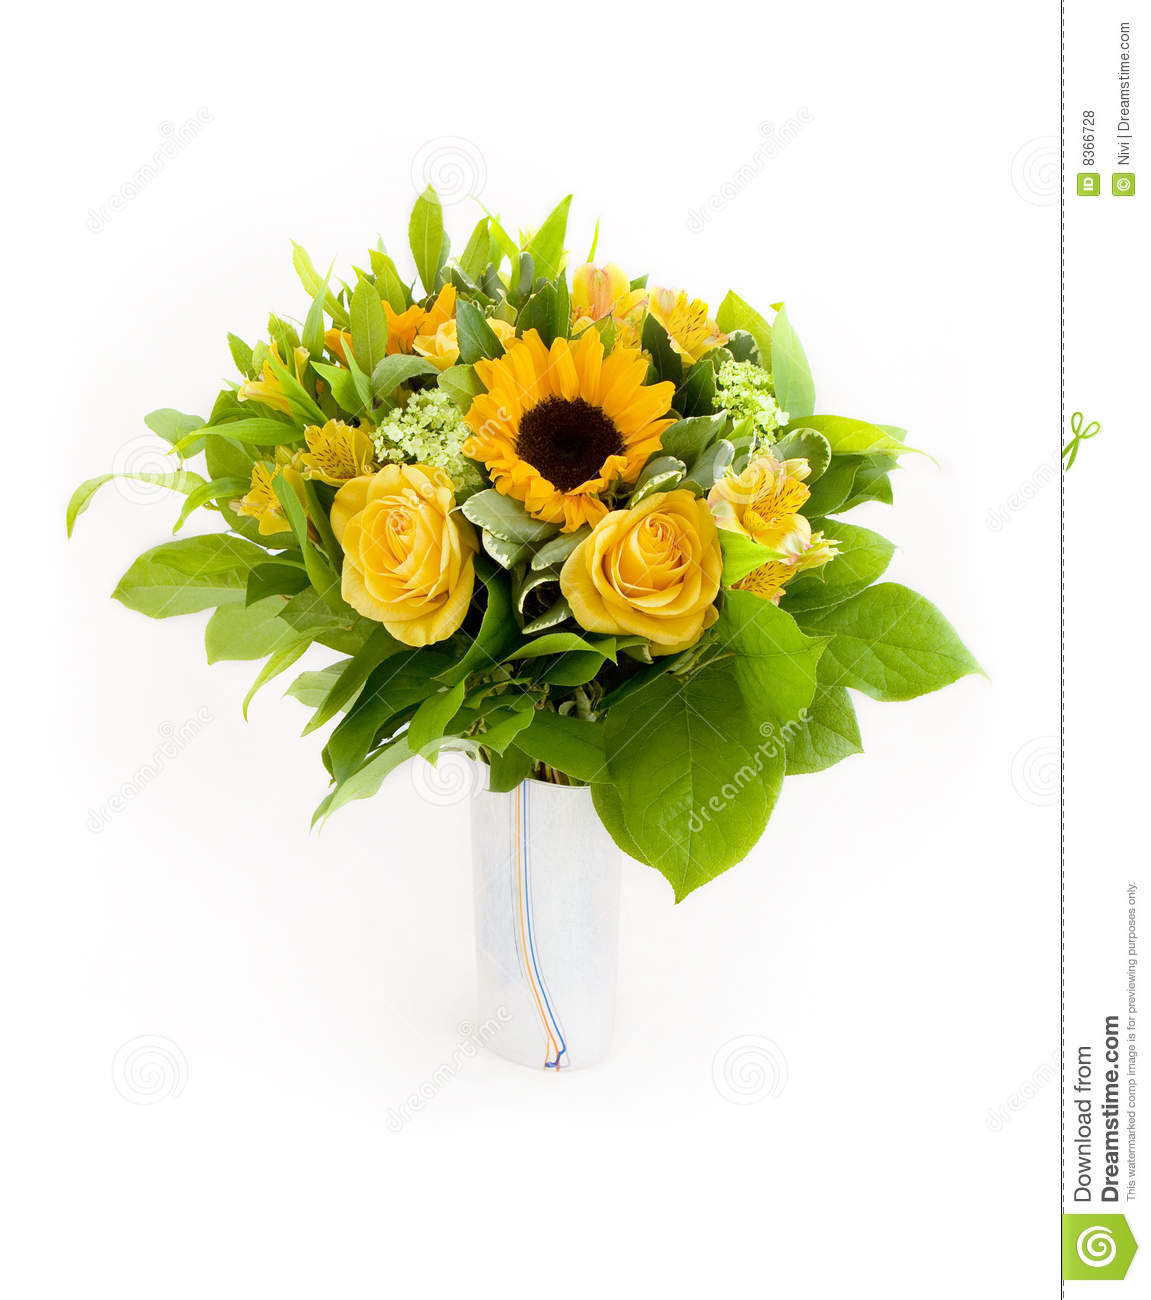 Free pictures of yellow flowers banner royalty free stock Yellow Flowers Bouquet Royalty Free Stock Photos - Image: 8366728 banner royalty free stock